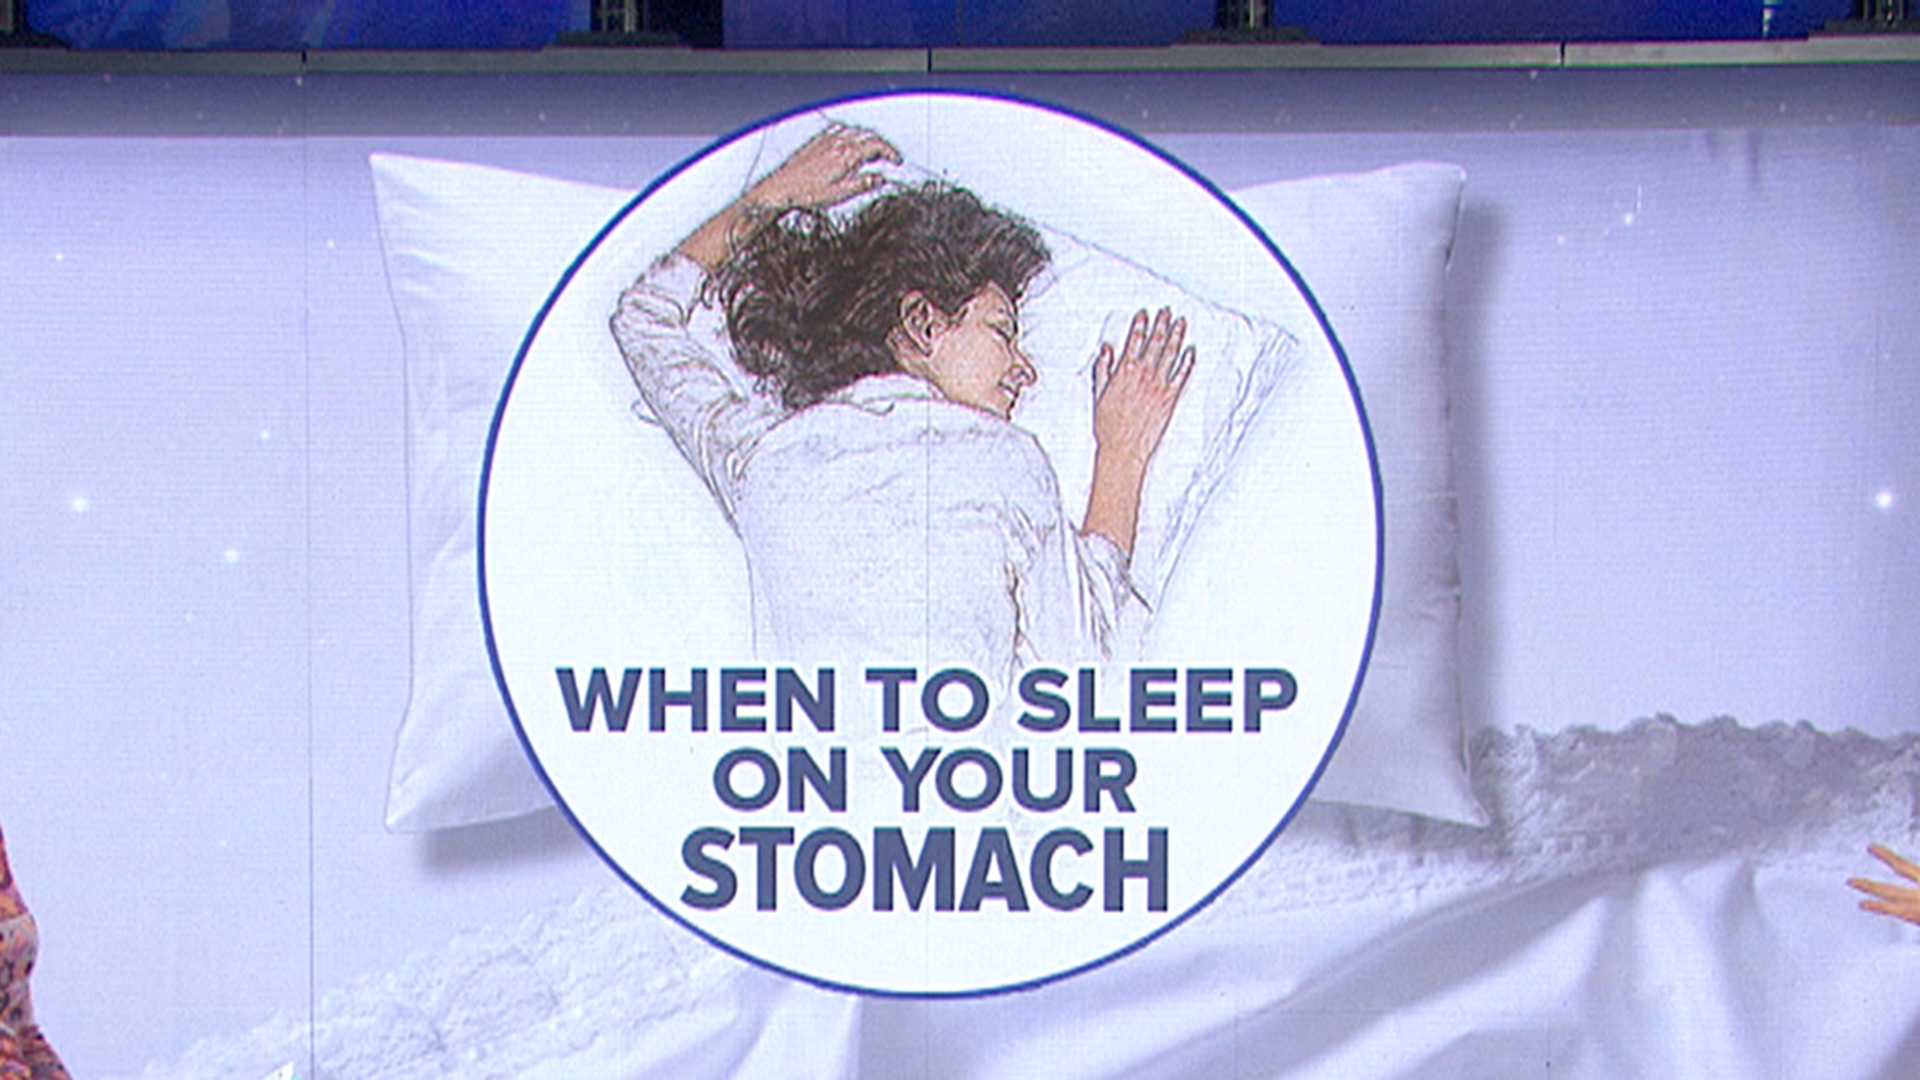 The key to sleeping well every night- without tossing and turning